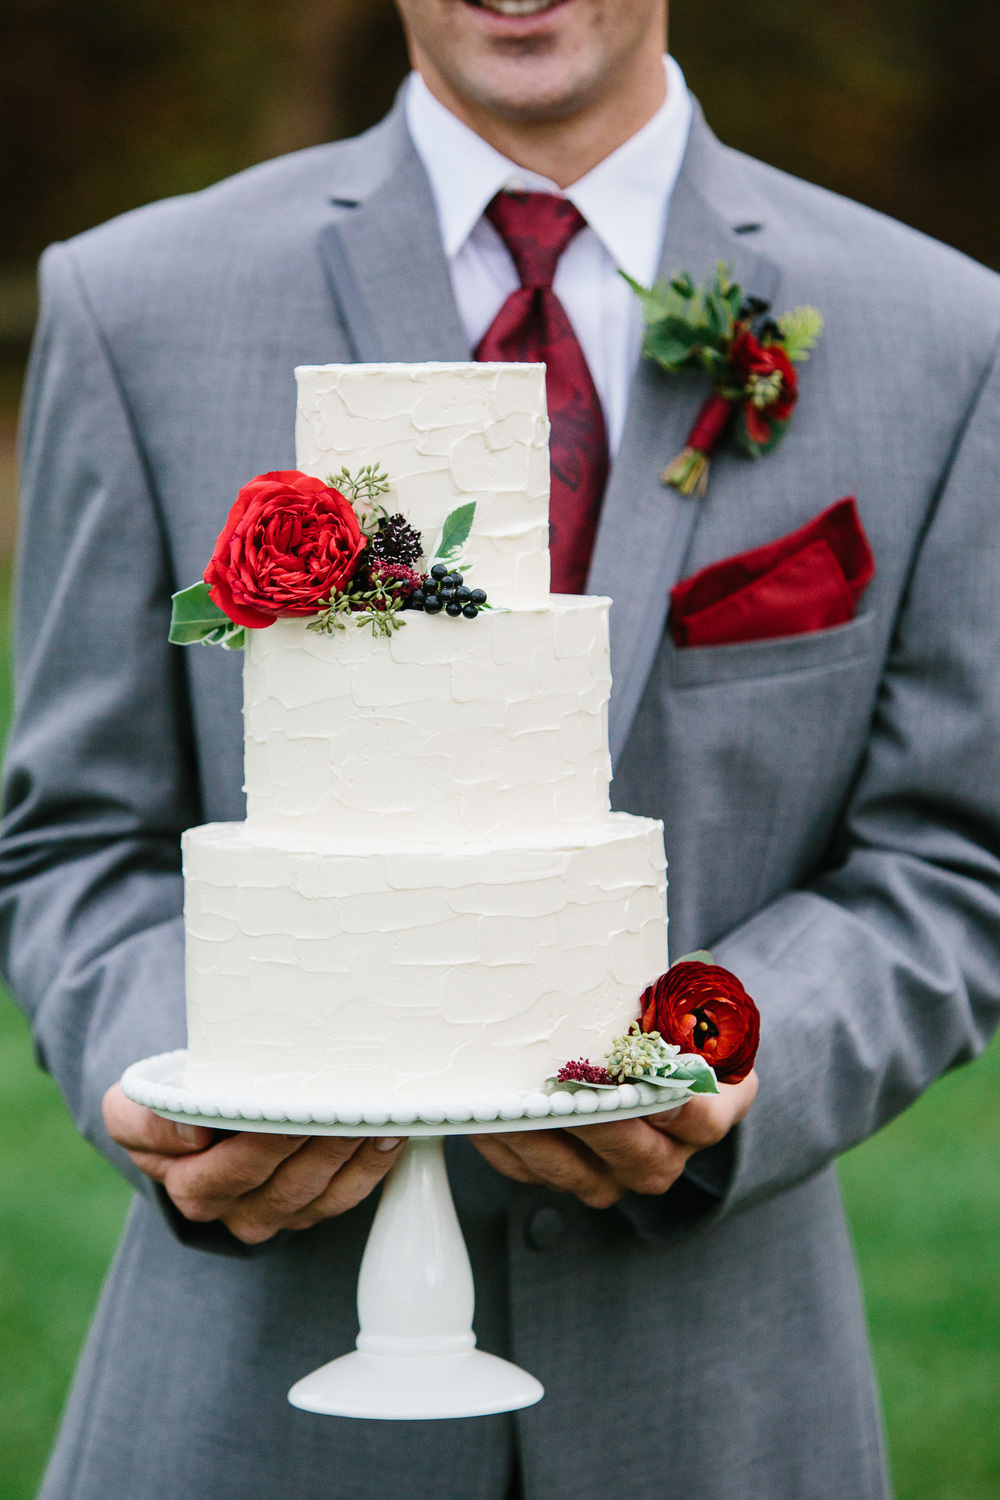 Groom Wedding Cake.jpg